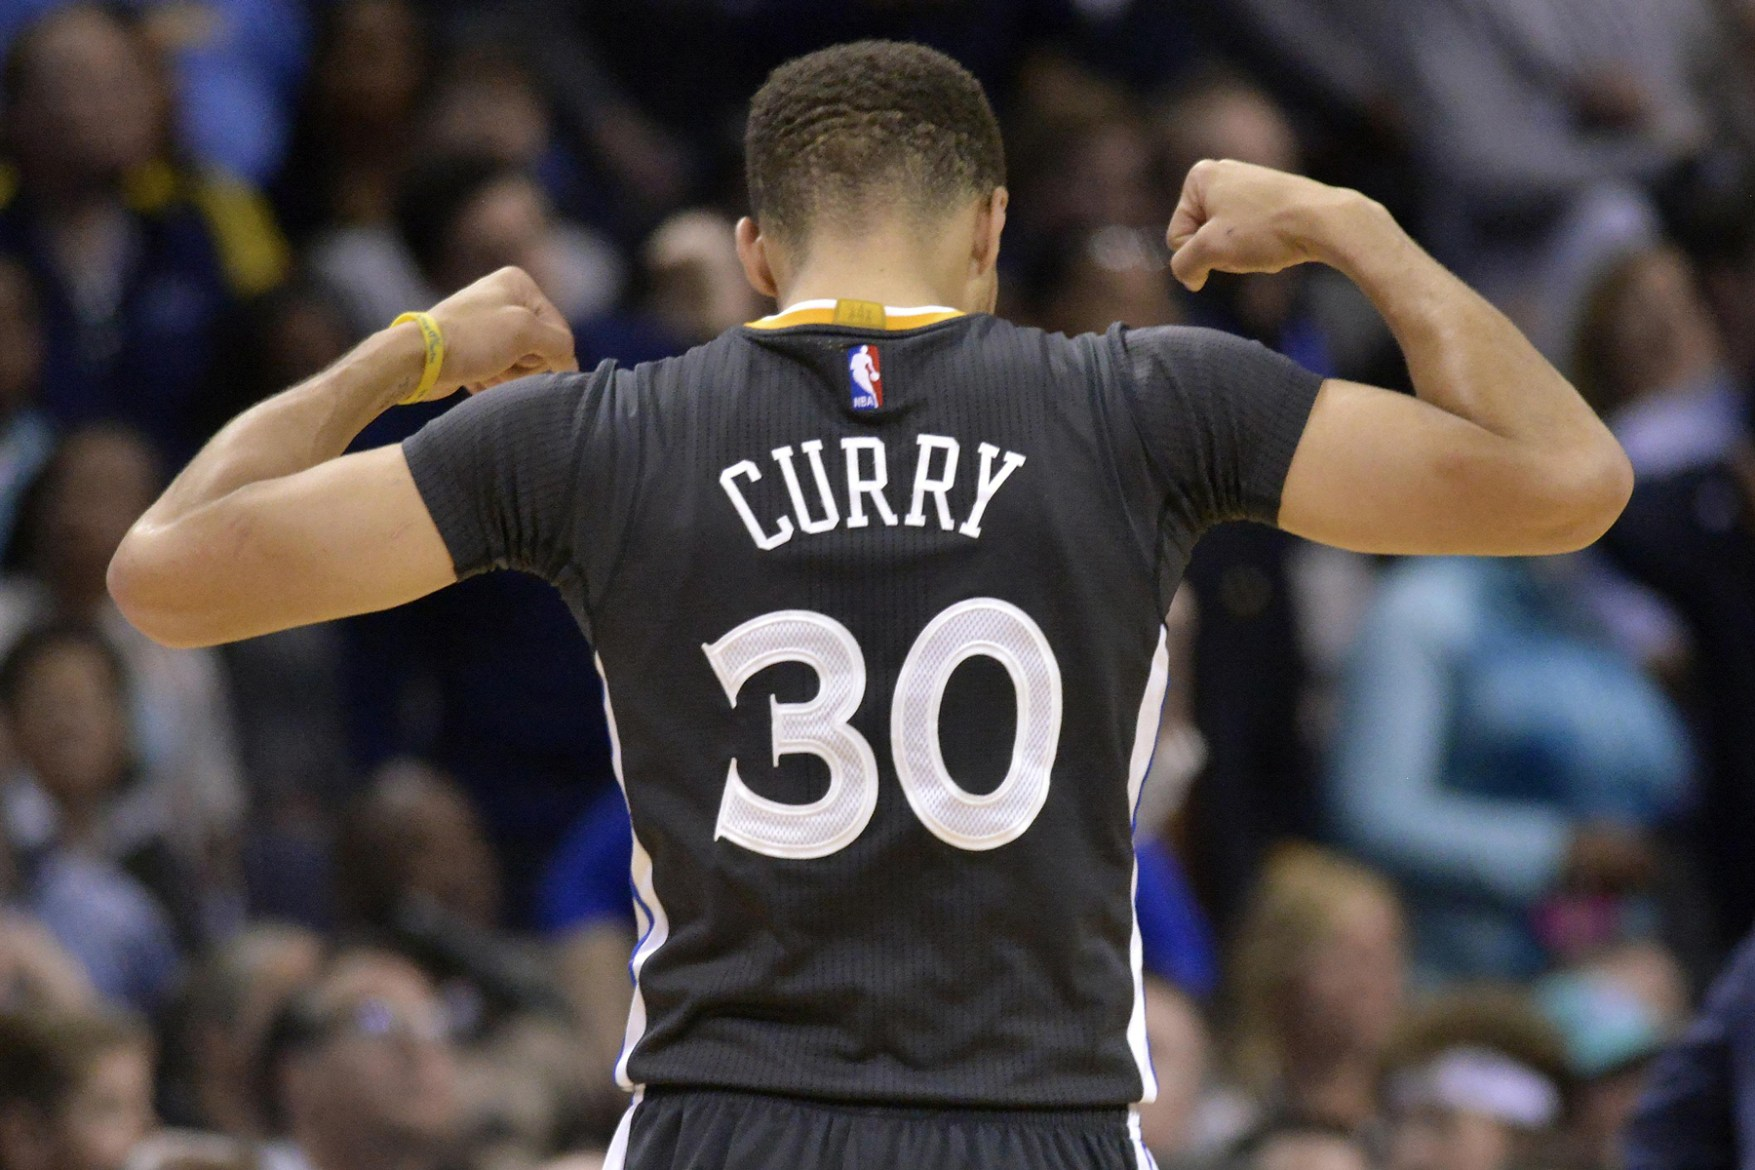 S.Curry